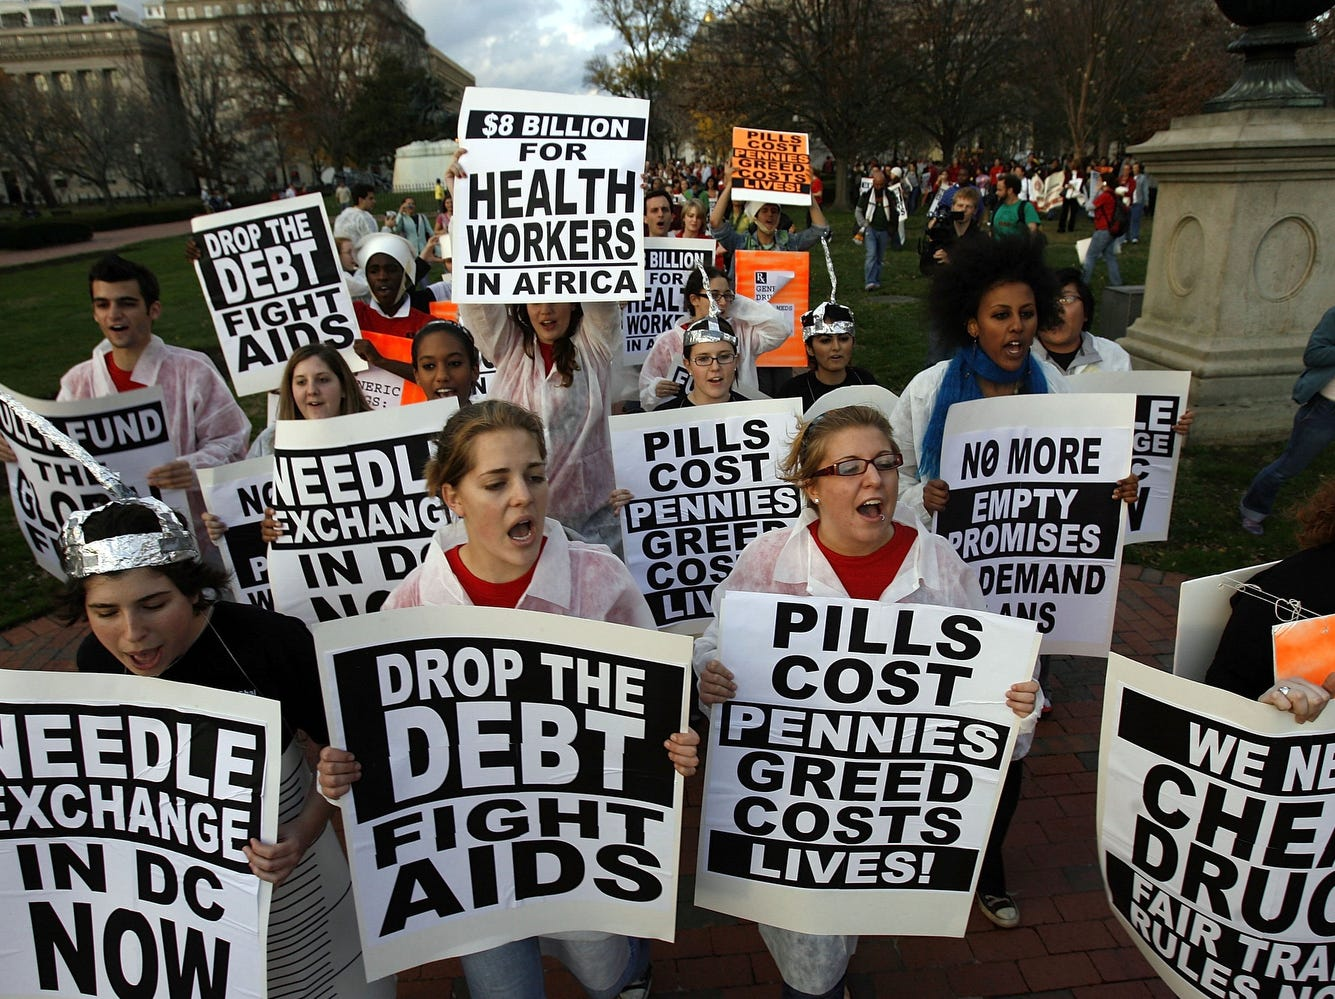 Demonstrators demand needle exchange programs and lower prices for medicines that fight HIV/AIDS in front of the White House on World AIDS Day 2006, in Washington, DC.